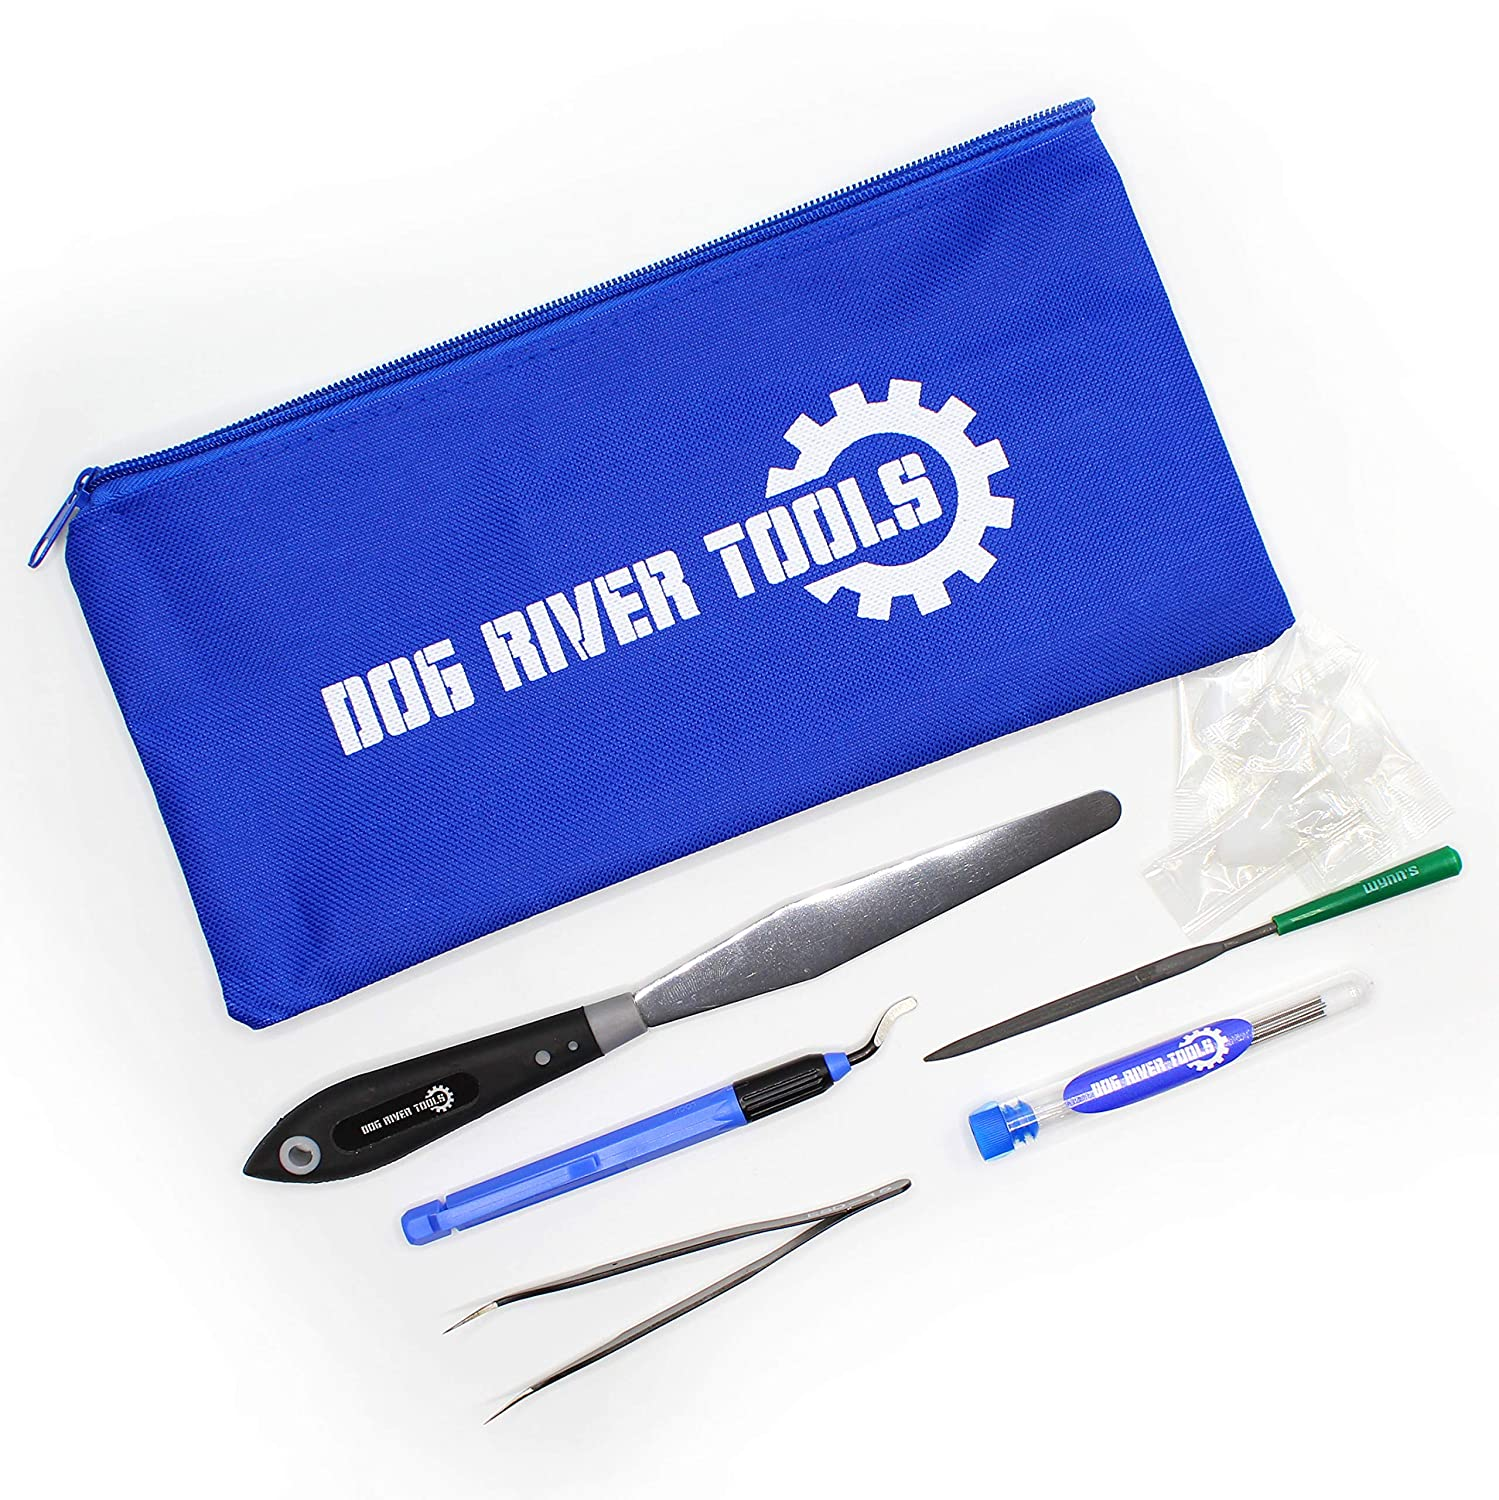 3D Printing Tool Kit - Print Removal, Nozzle Cleaning, Clean Up, Finishing and Maintenance Dog River Tools